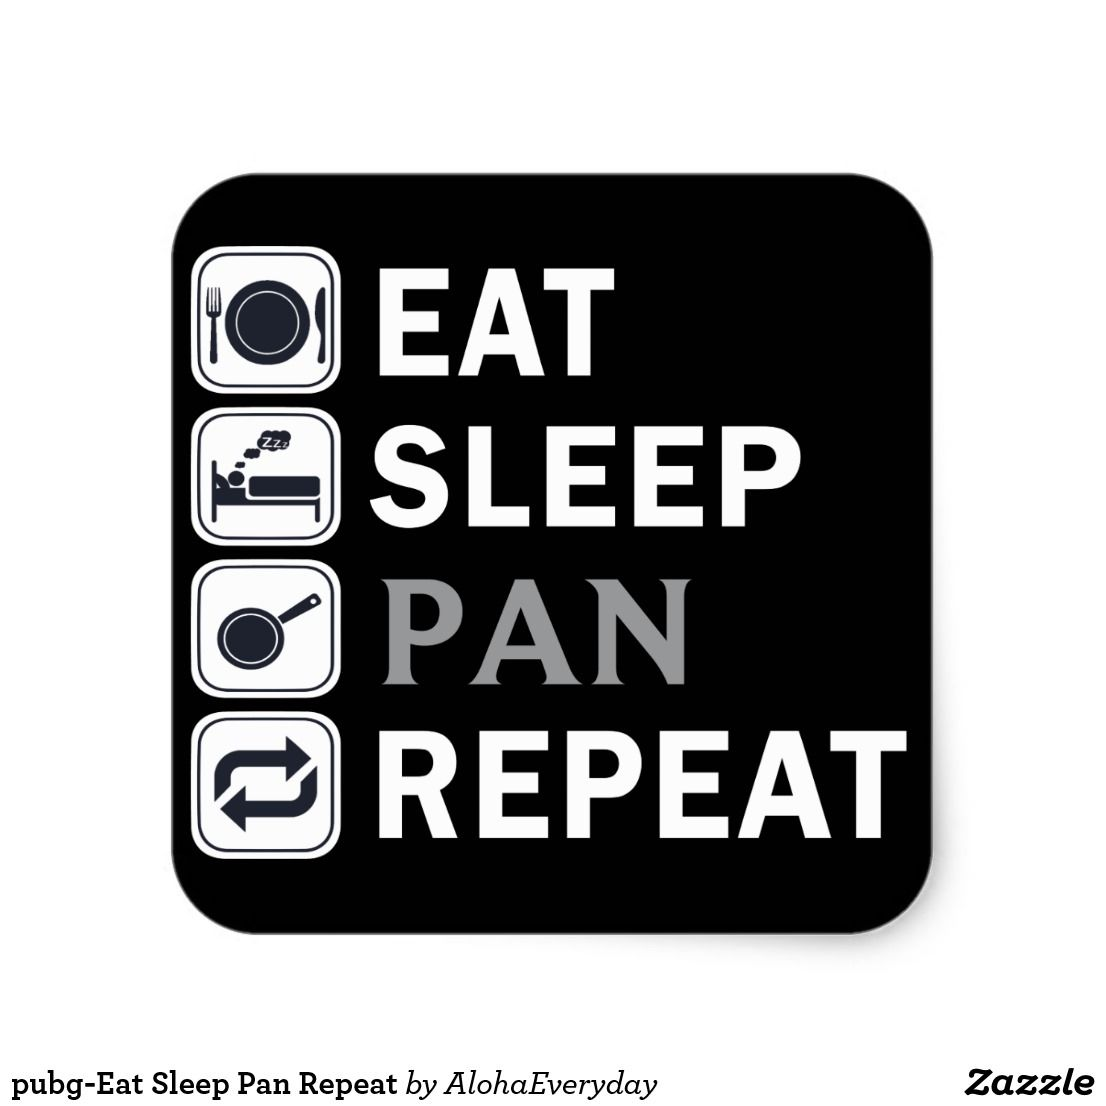 cae5408e7 pubg-Eat Sleep Pan Repeat Square Sticker | Zazzle.com | PUBG | Eat ...